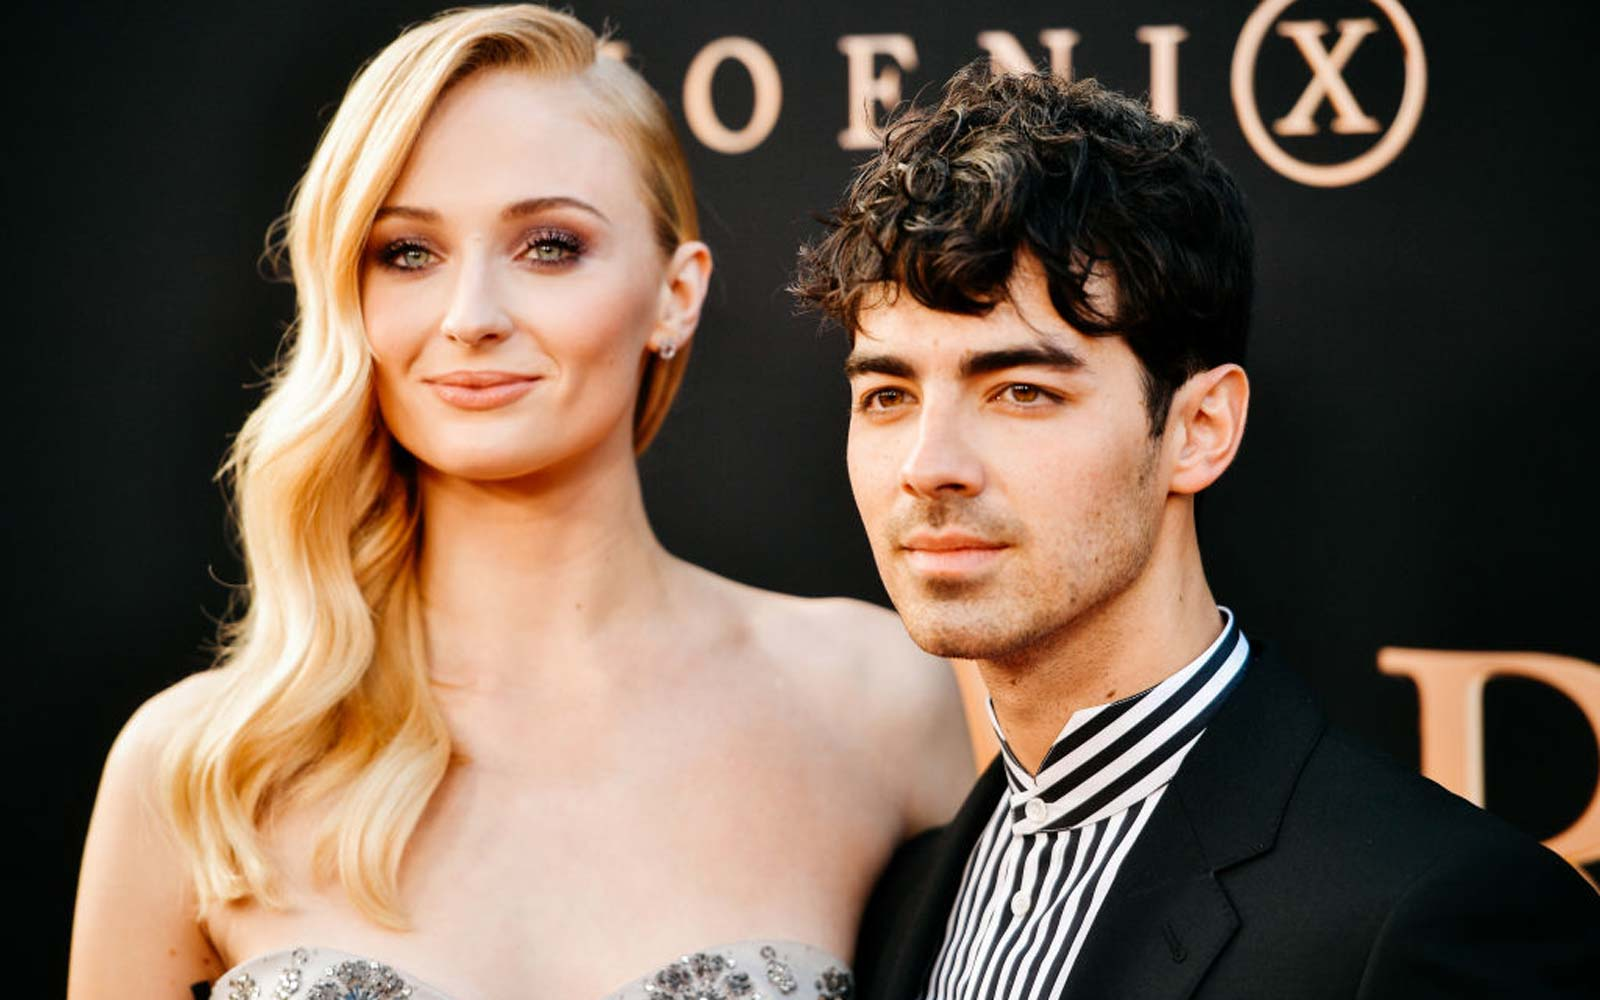 Newlyweds Joe Jonas and Sophie Turner Share Intimate Photos From Their Maldives Honeymoon